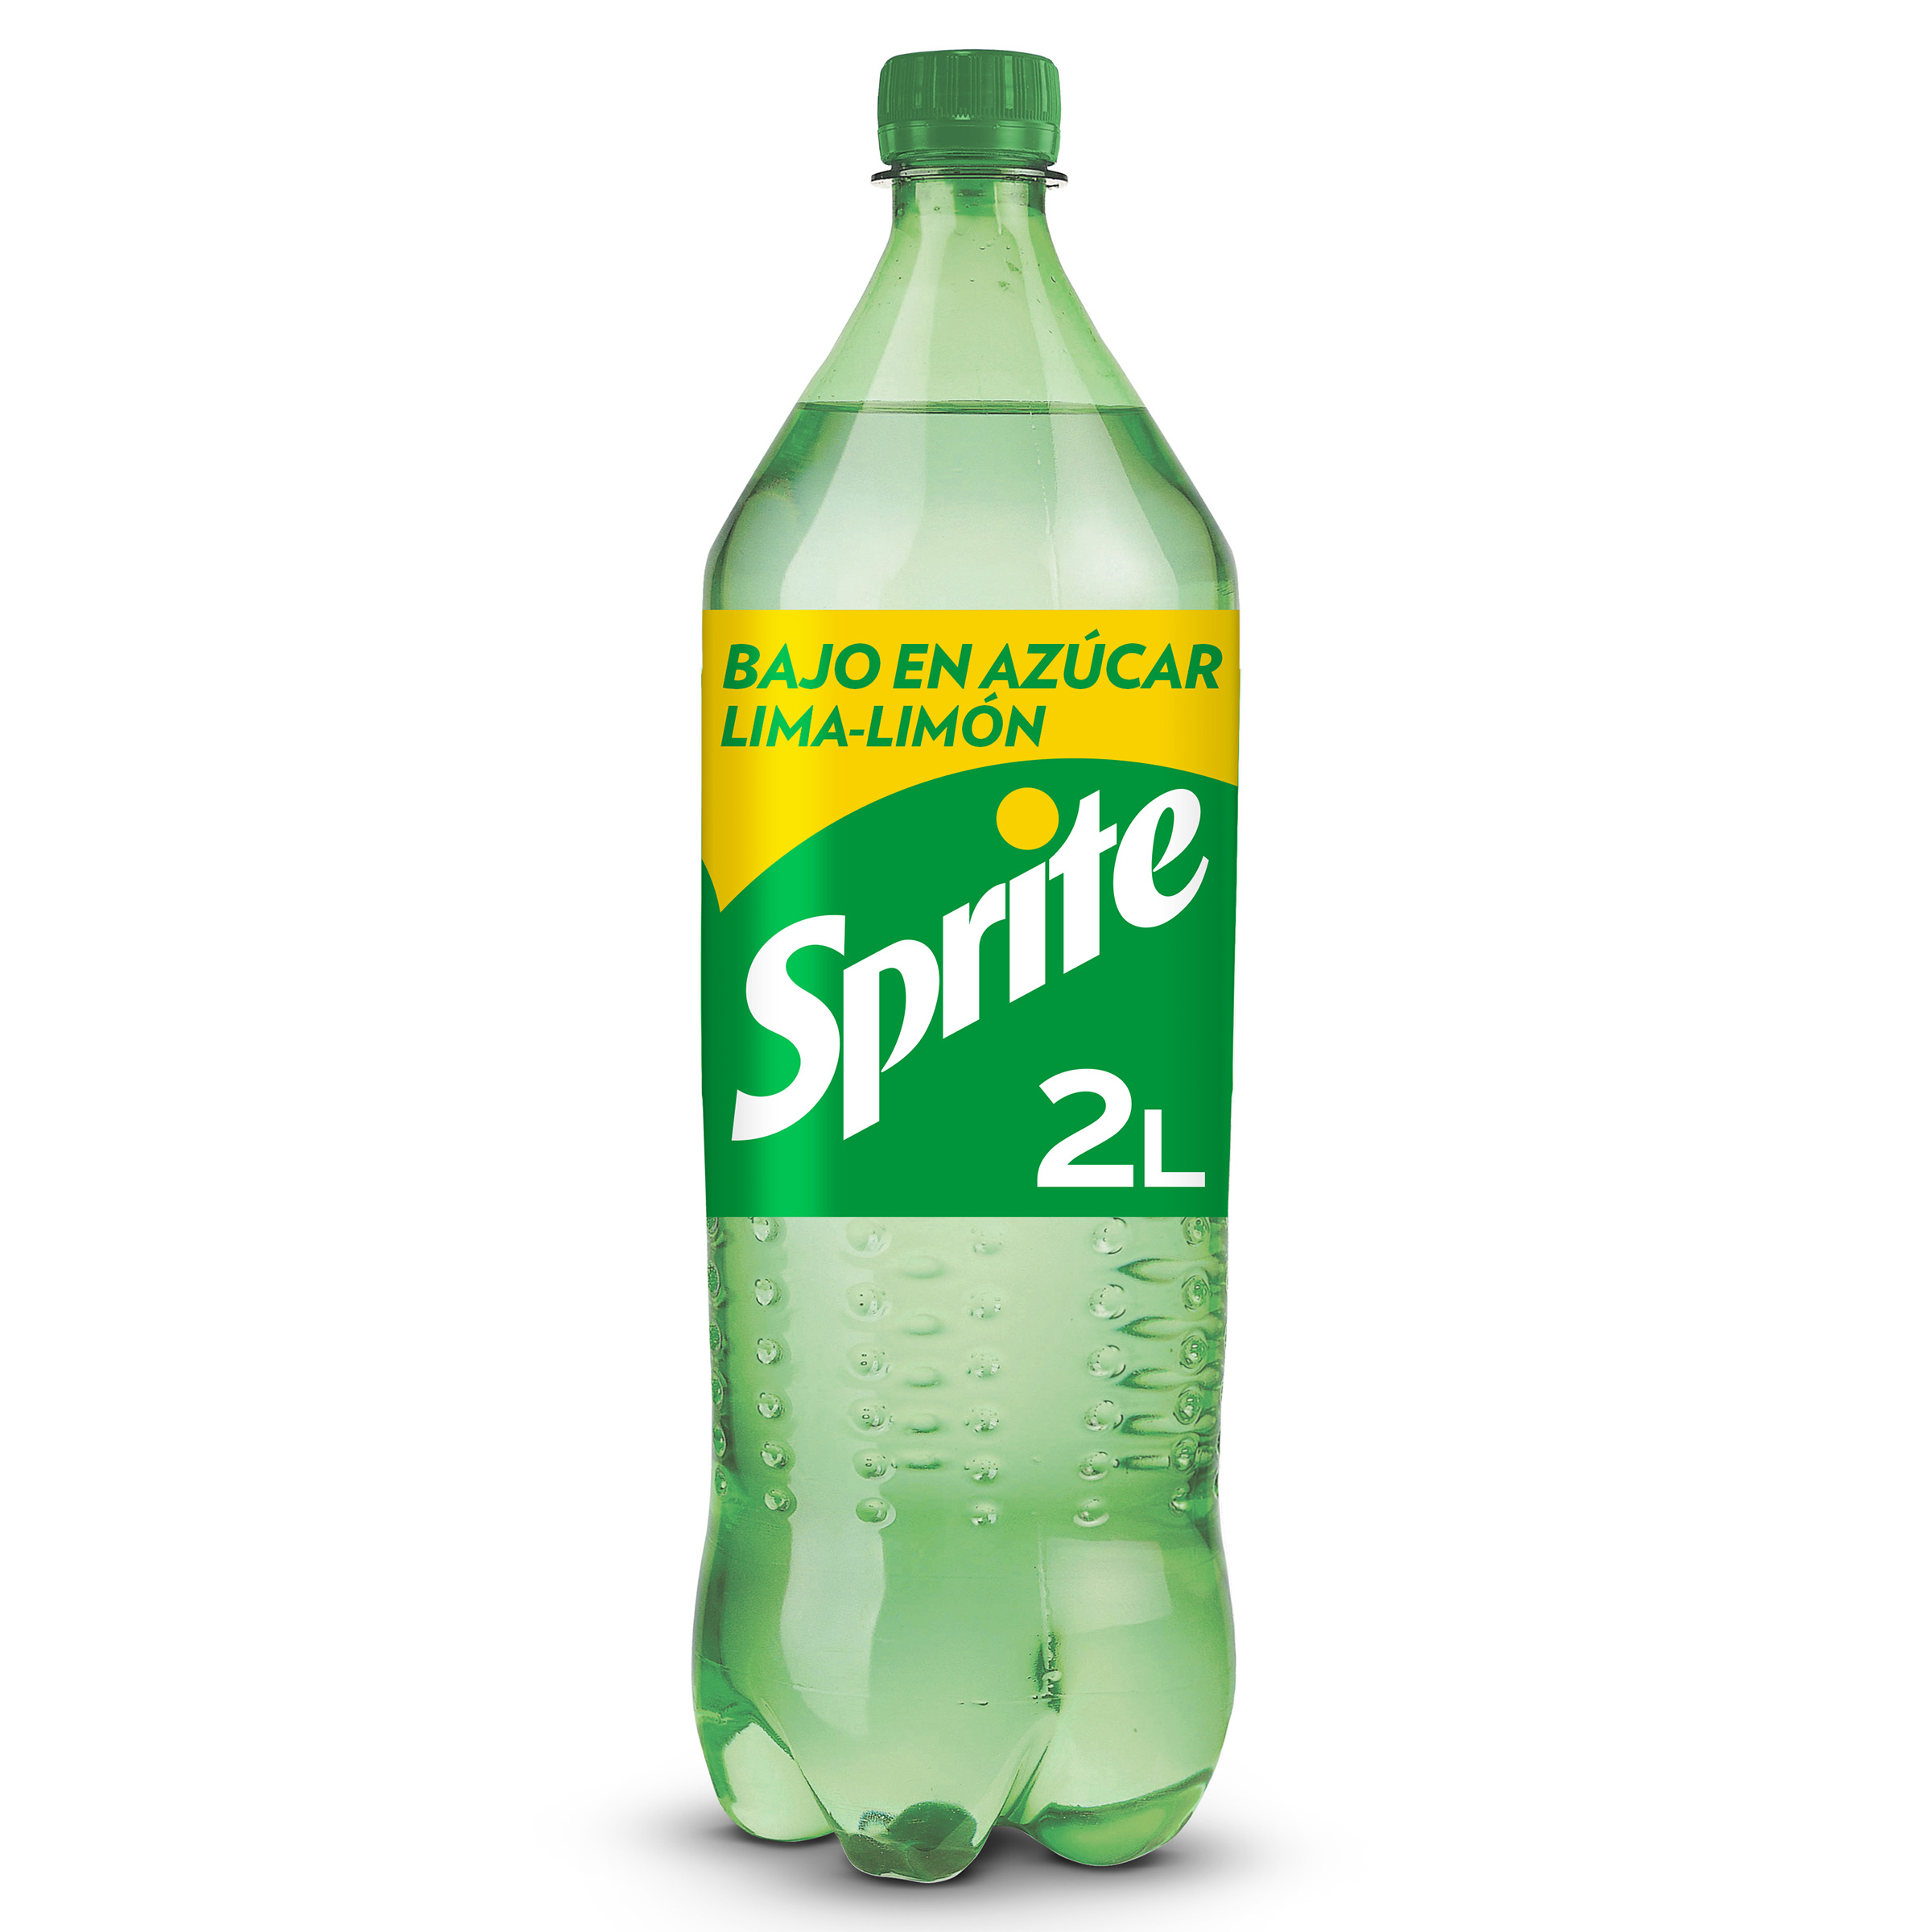 Sprite refresco lima limon fresh de 2l. en botella